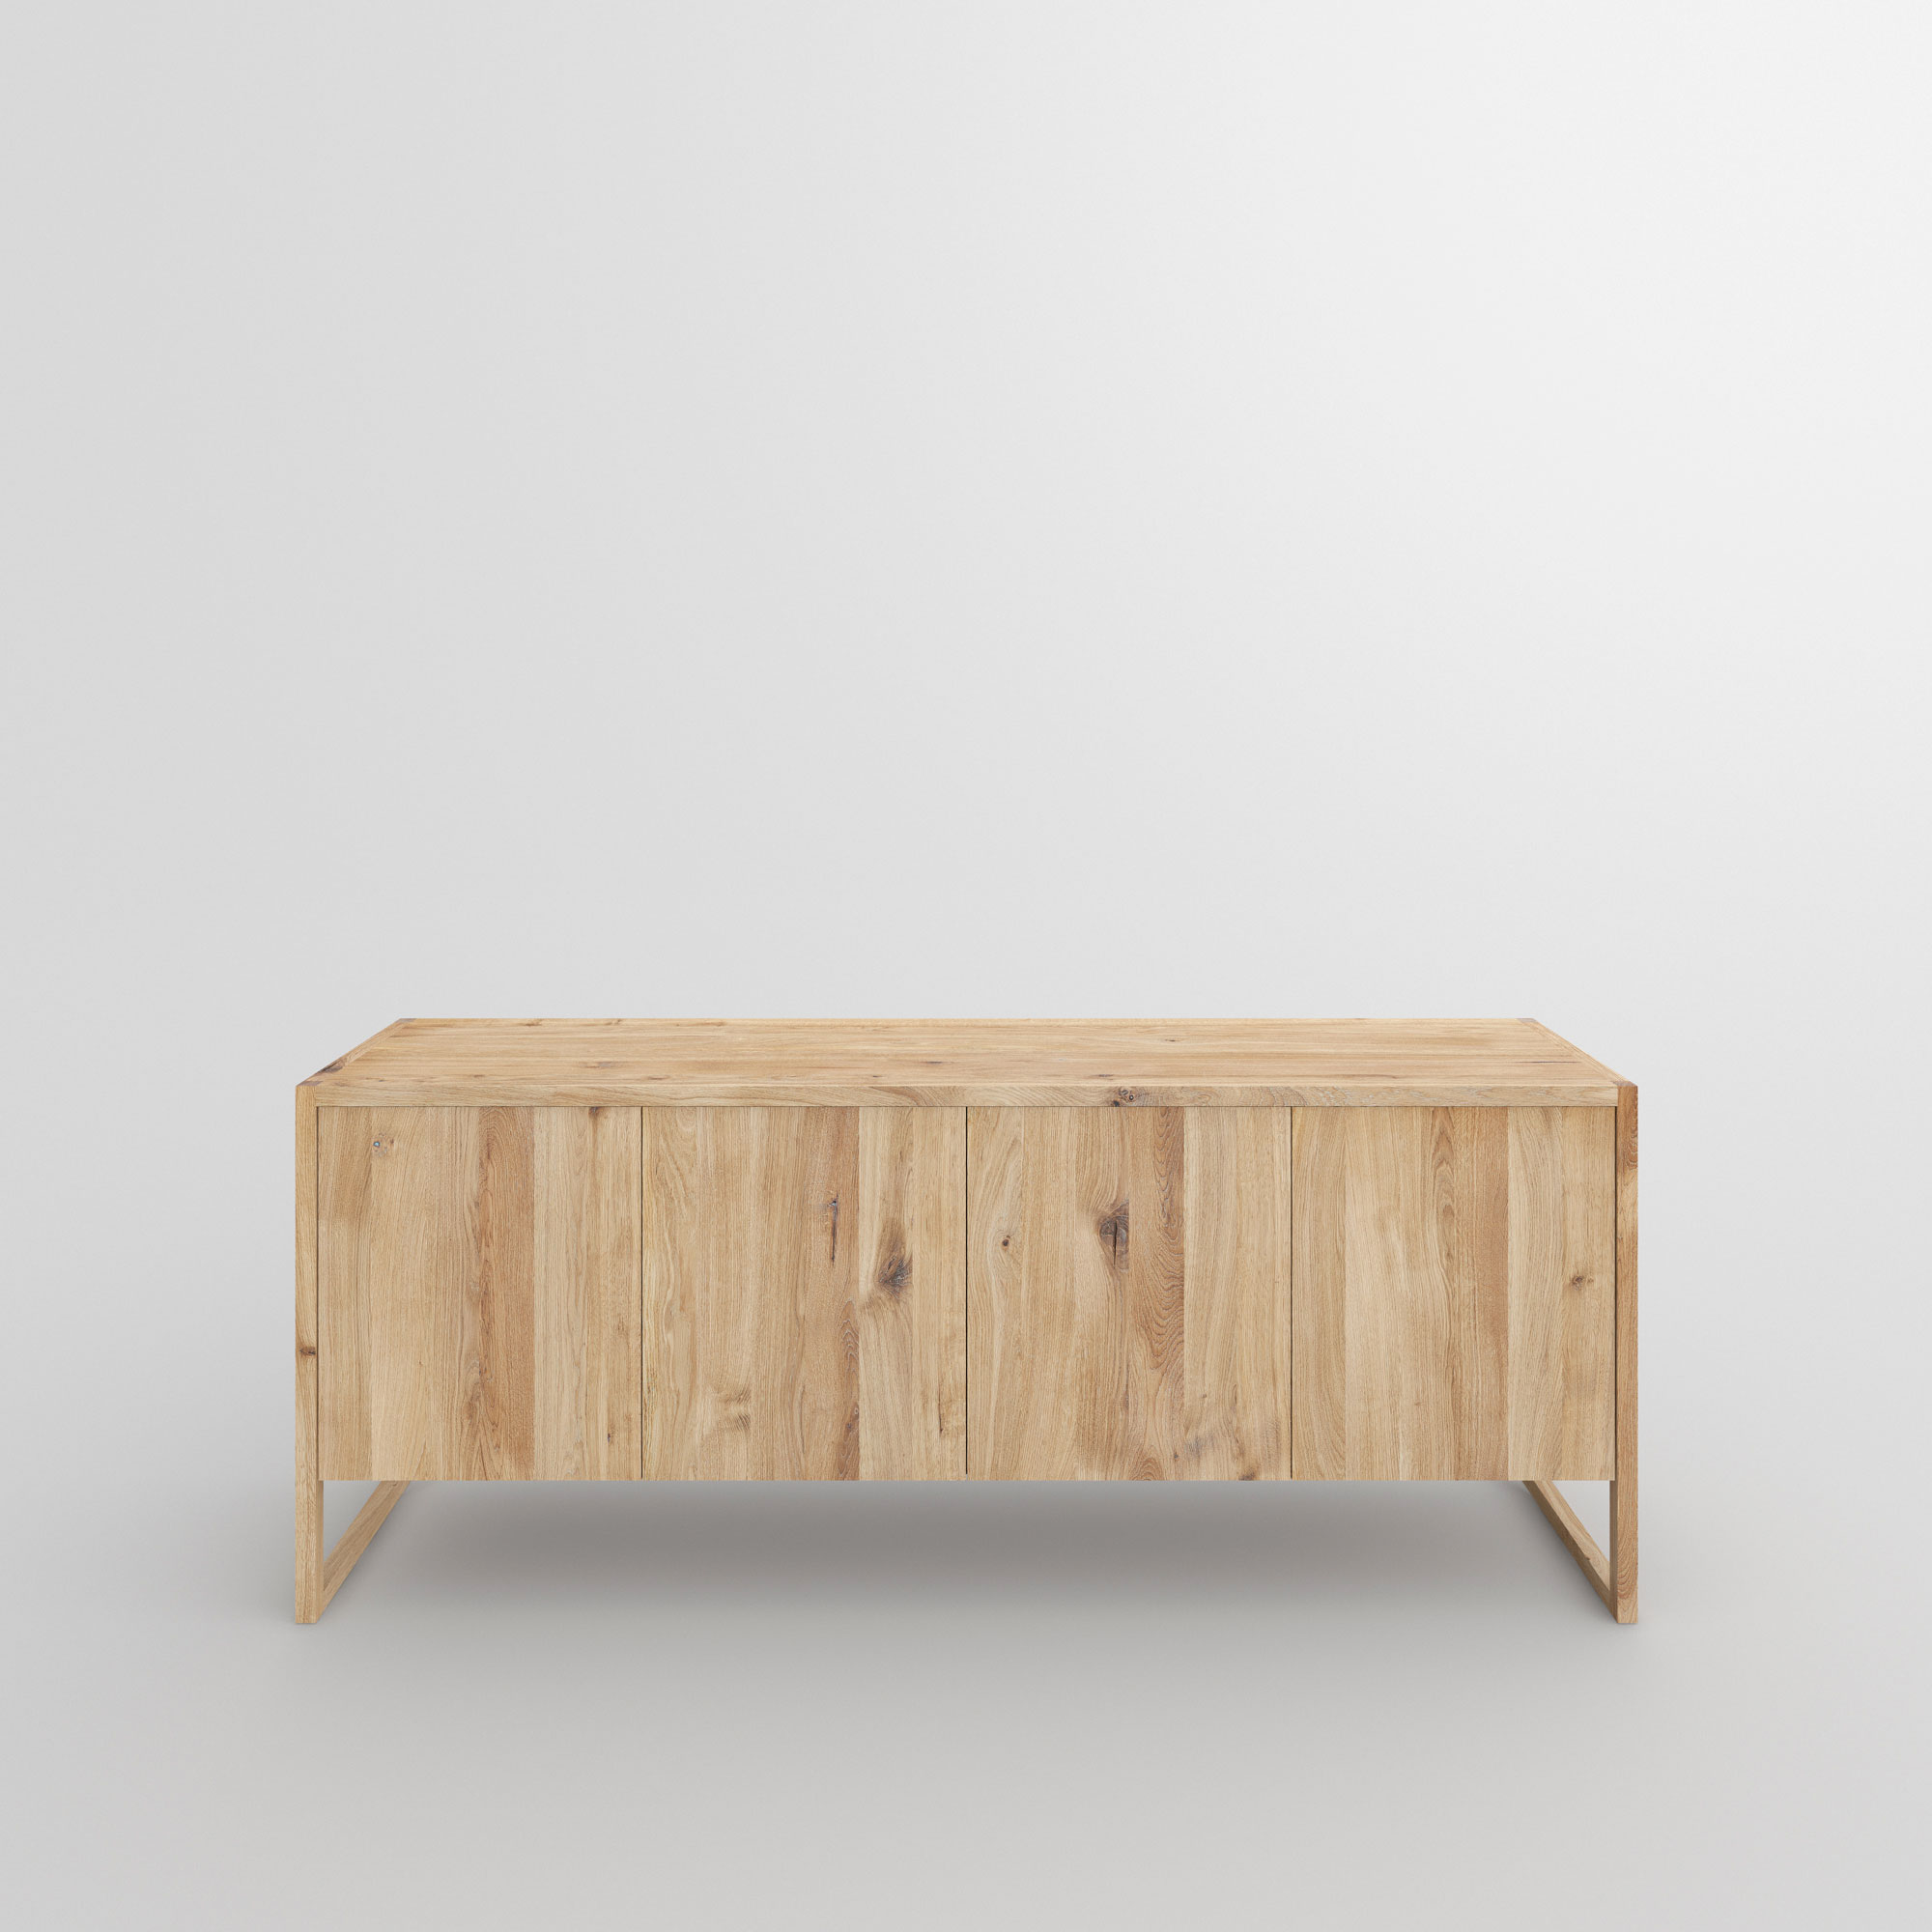 BIO-MDF Wood Sideboard SENA 1 custom made in solid wood by vitamin design